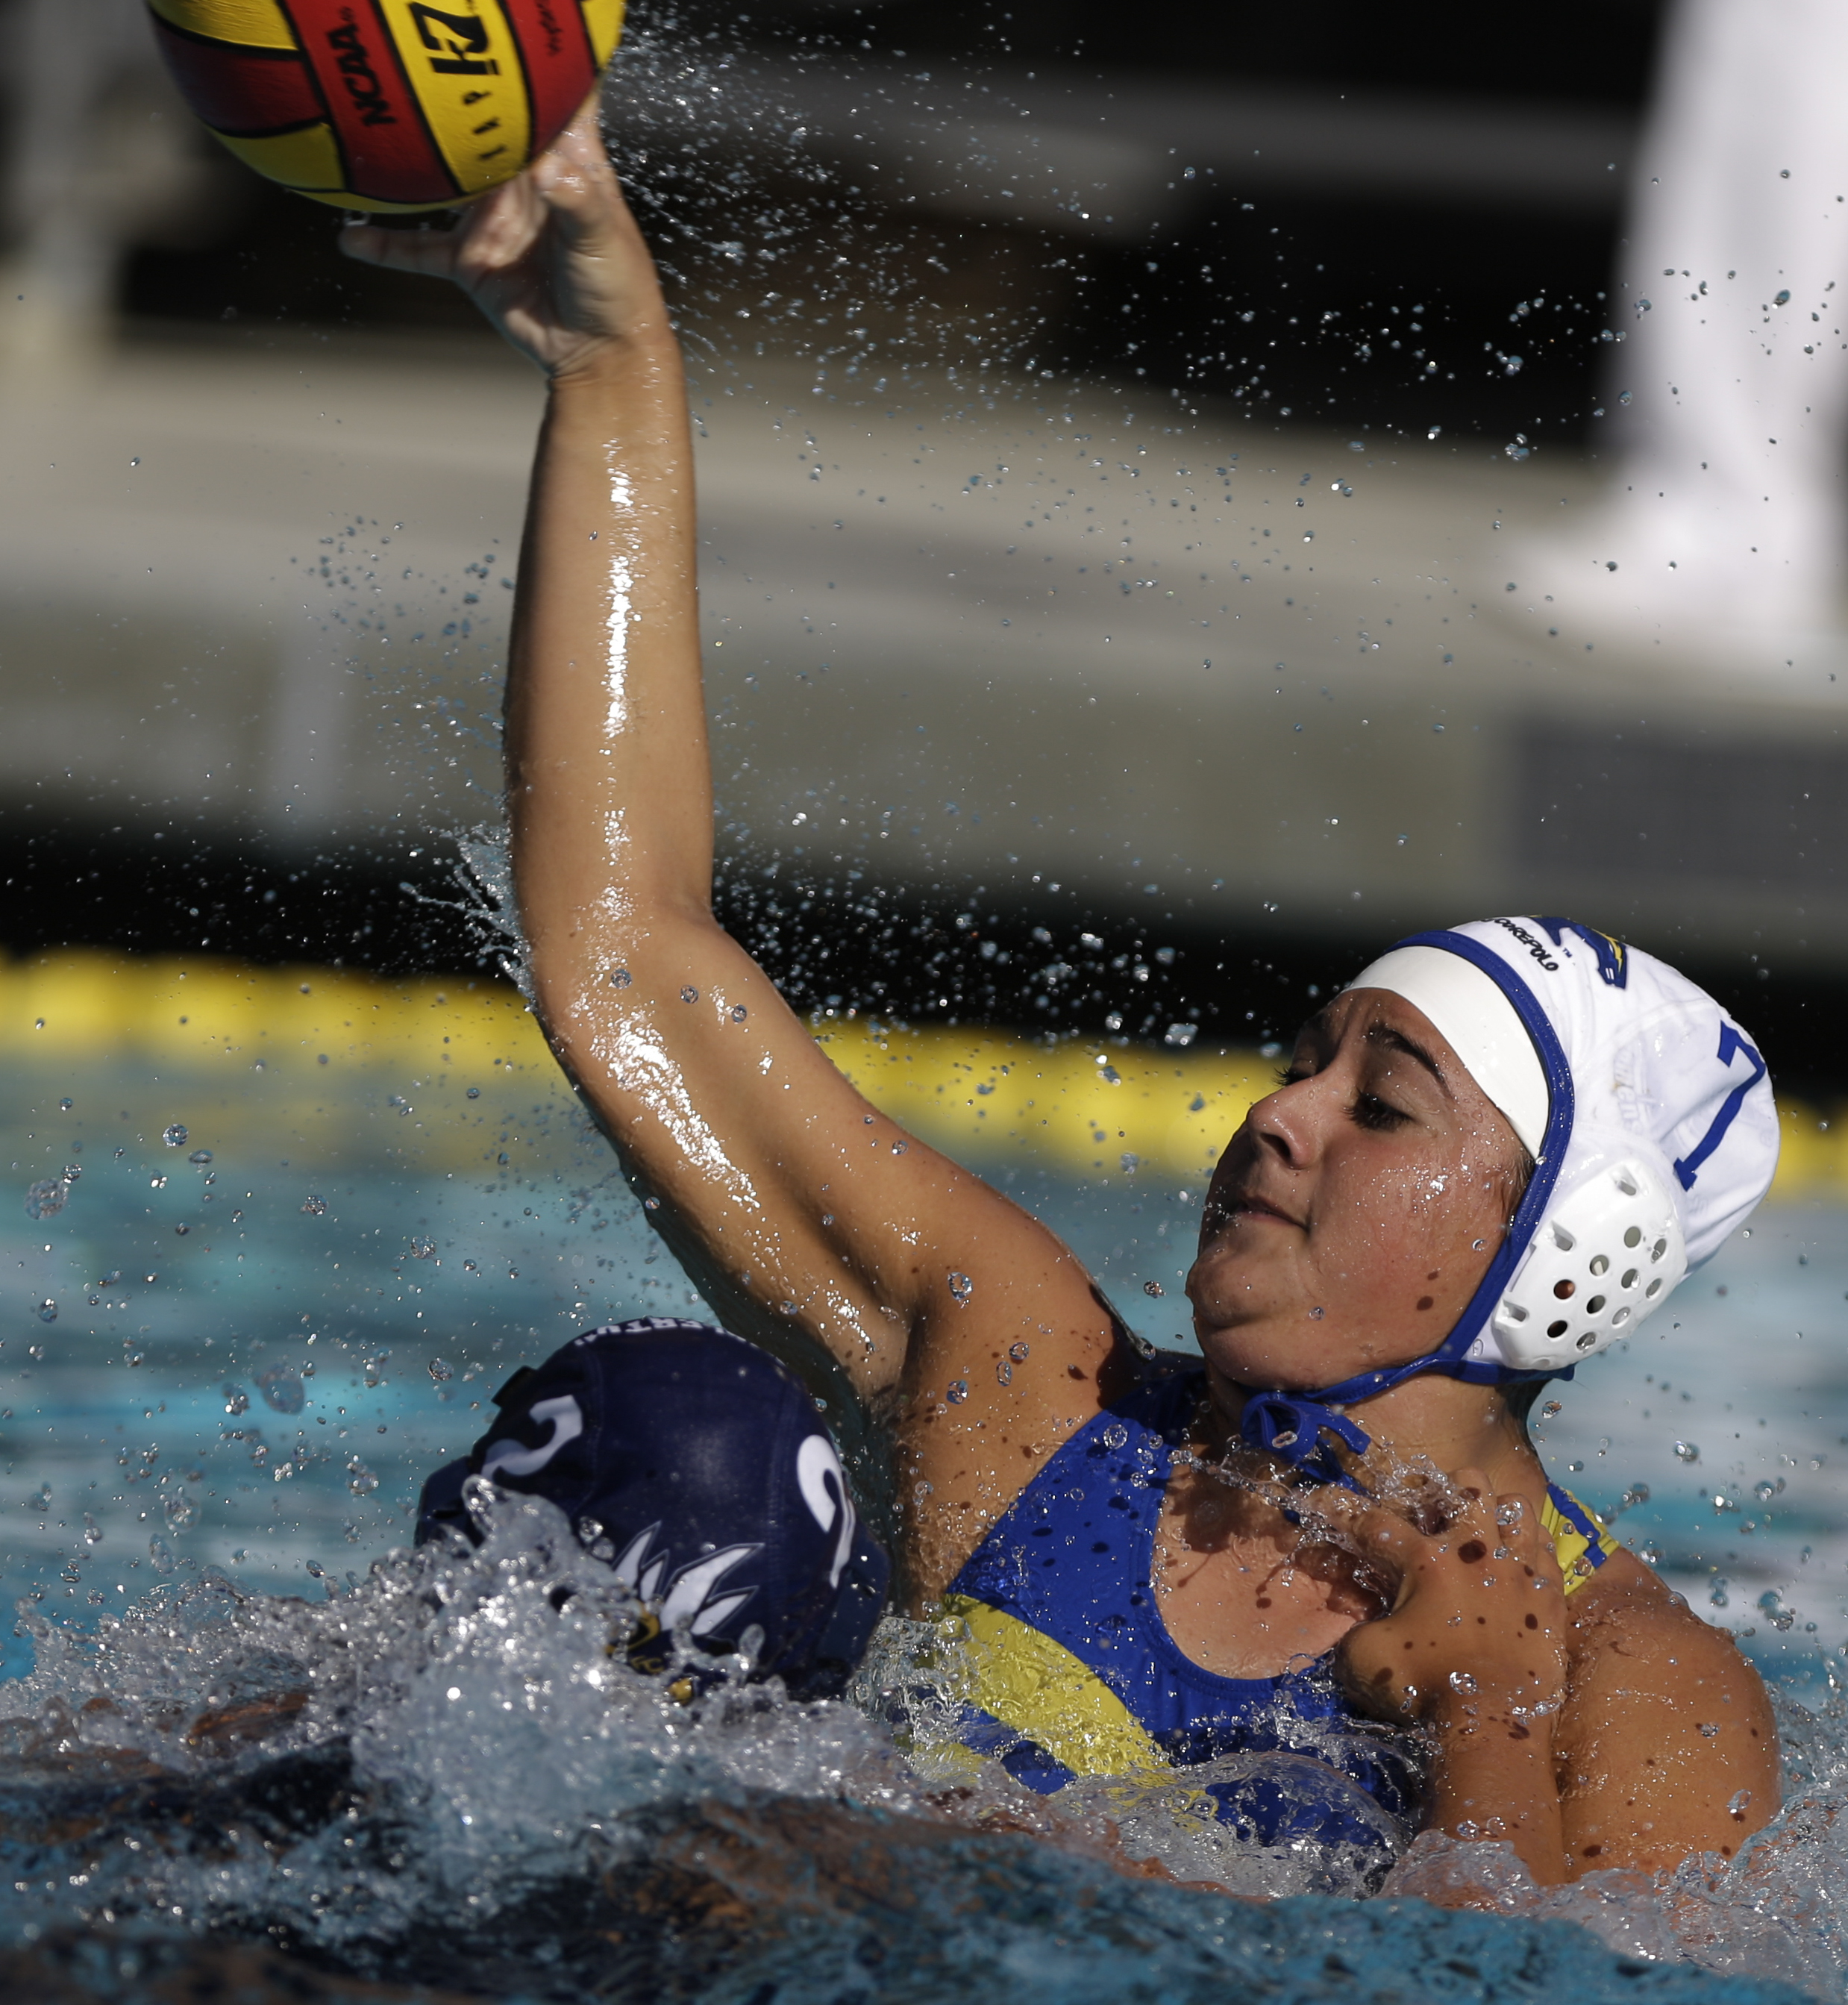 11-3-16-WaterPolo_C-292.jpg